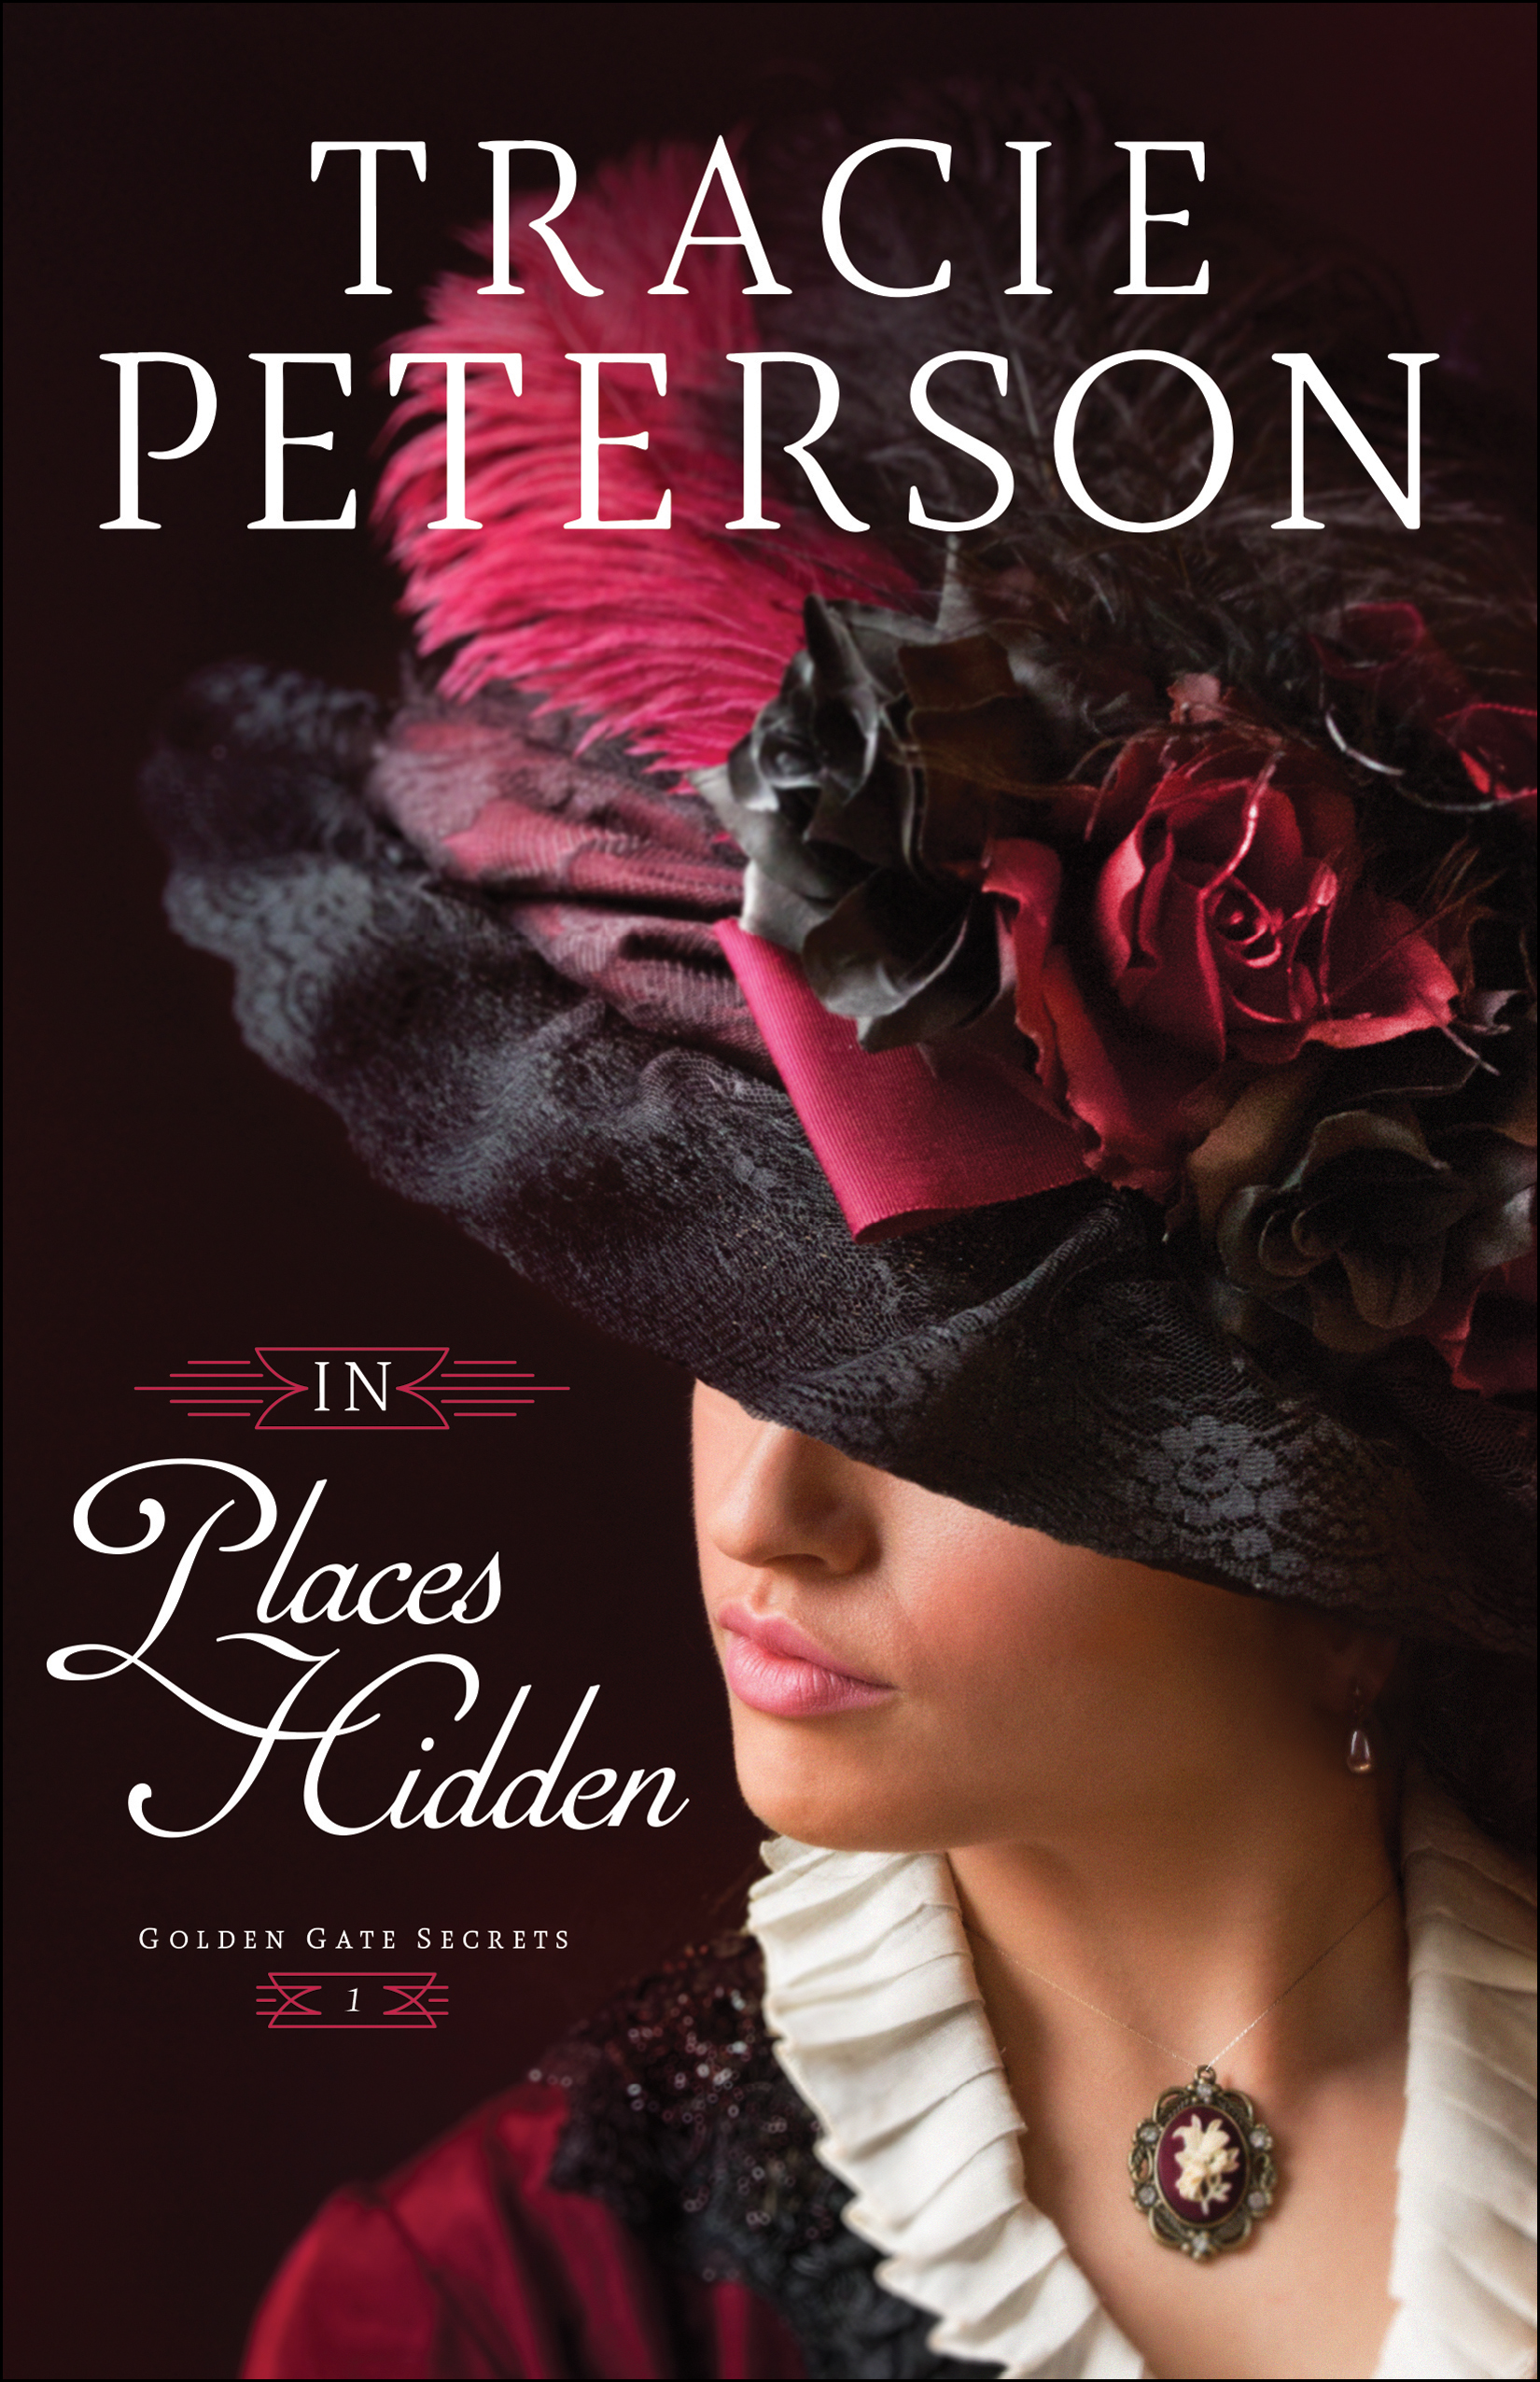 Book review of In Places Hidden by Tracie Peterson (Bethany House) by papertapepins